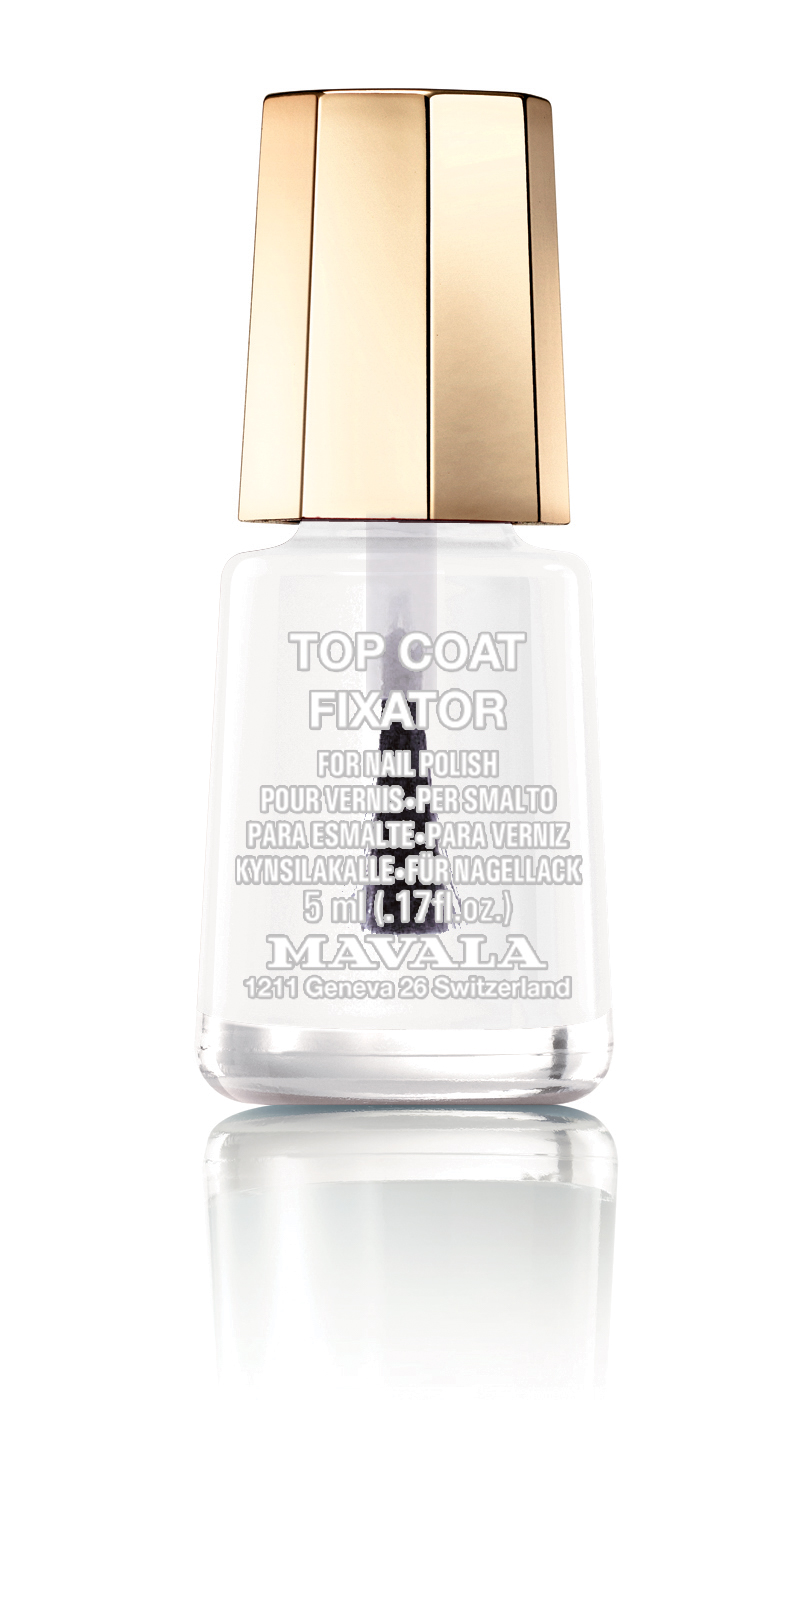 TOP COAT FIXATOR